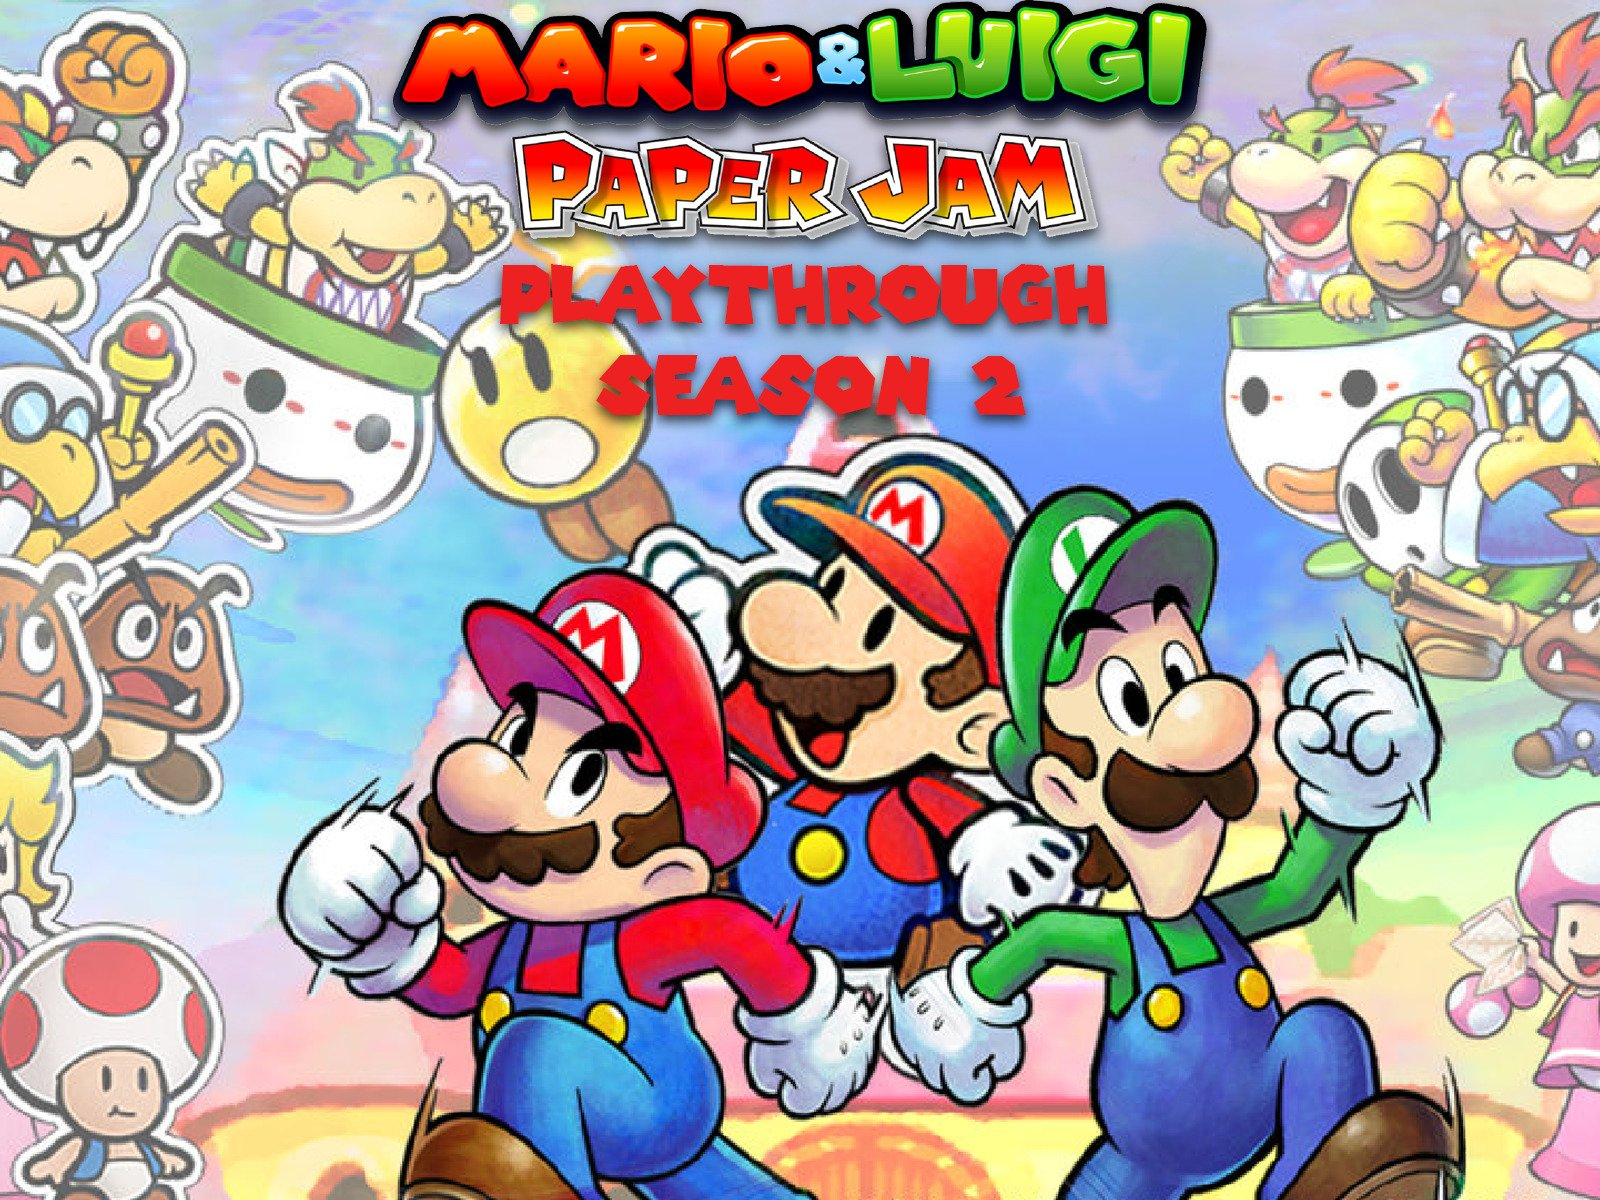 Clip: Mario & Luigi Paper Jam Playthrough - Season 2